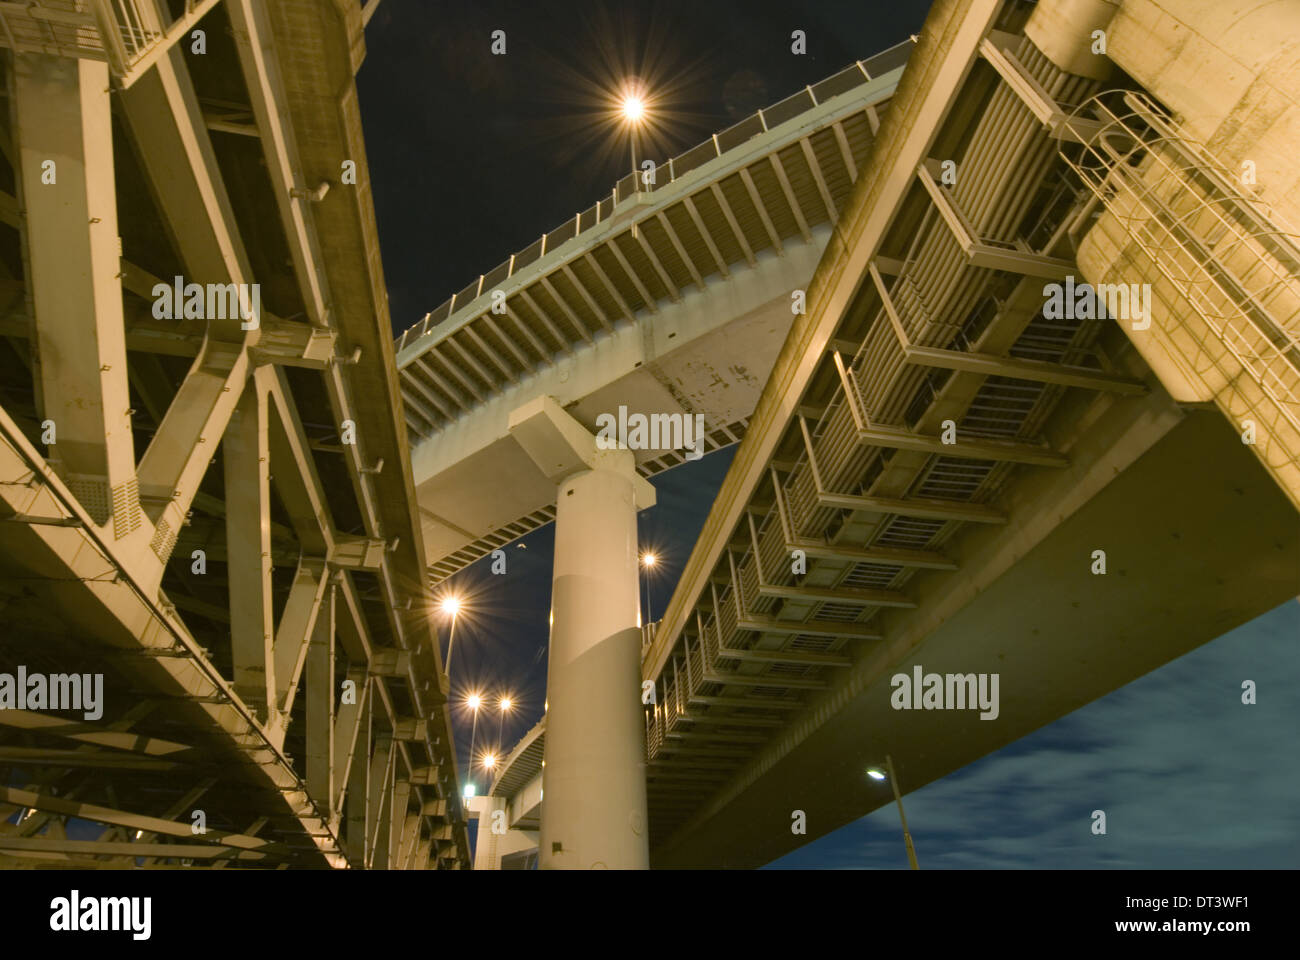 highways structure background over night sky - Stock Image